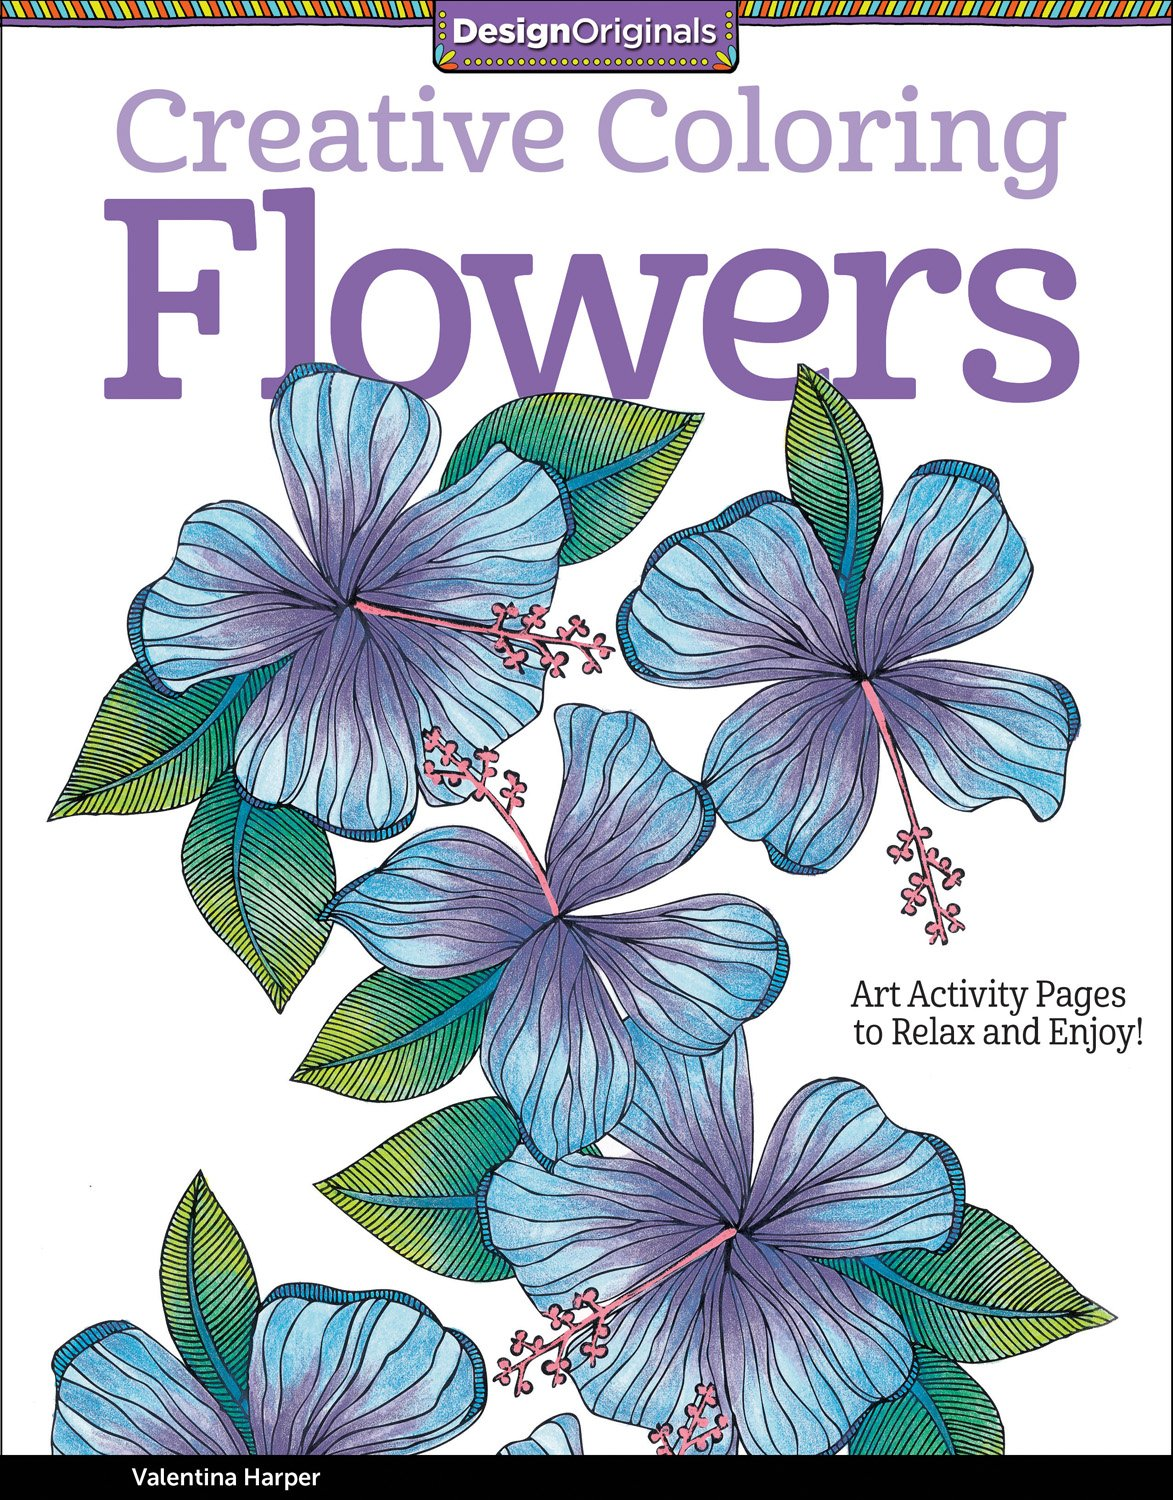 Creative Coloring Flowers Activity Pages product image